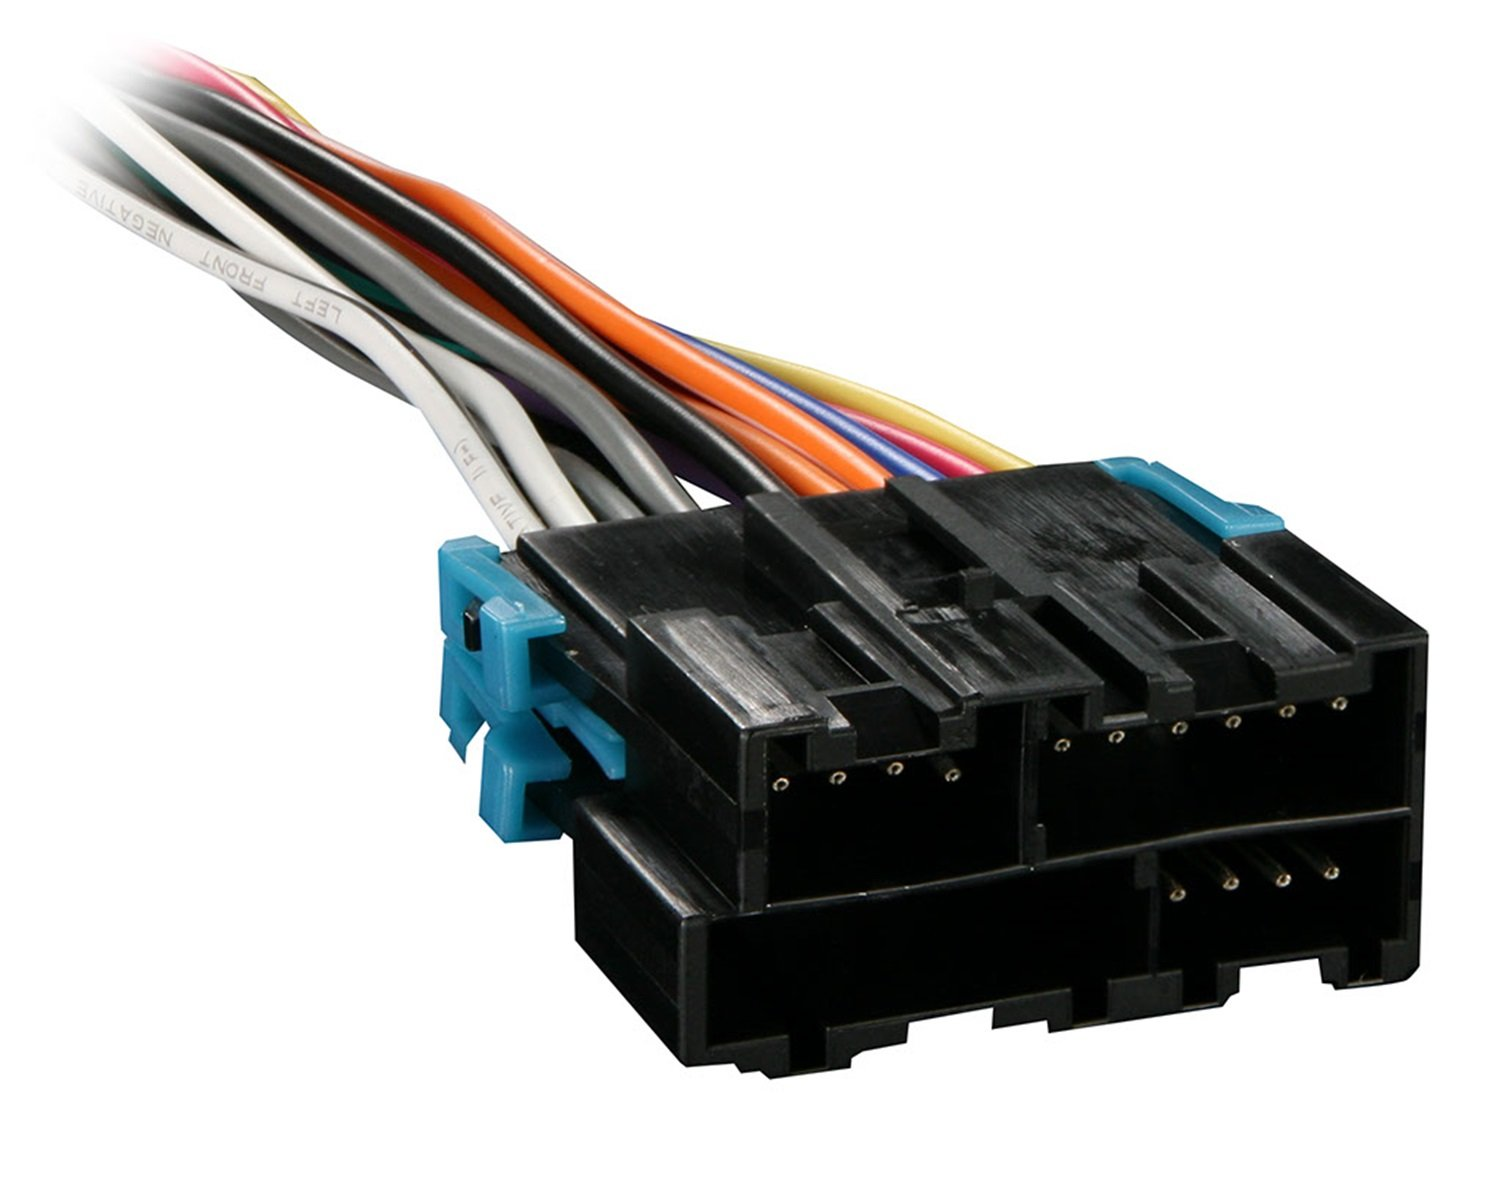 61 CwjZt1hL._SL1500_ radio wiring harnesses amazon com car audio harness wire gauge at crackthecode.co